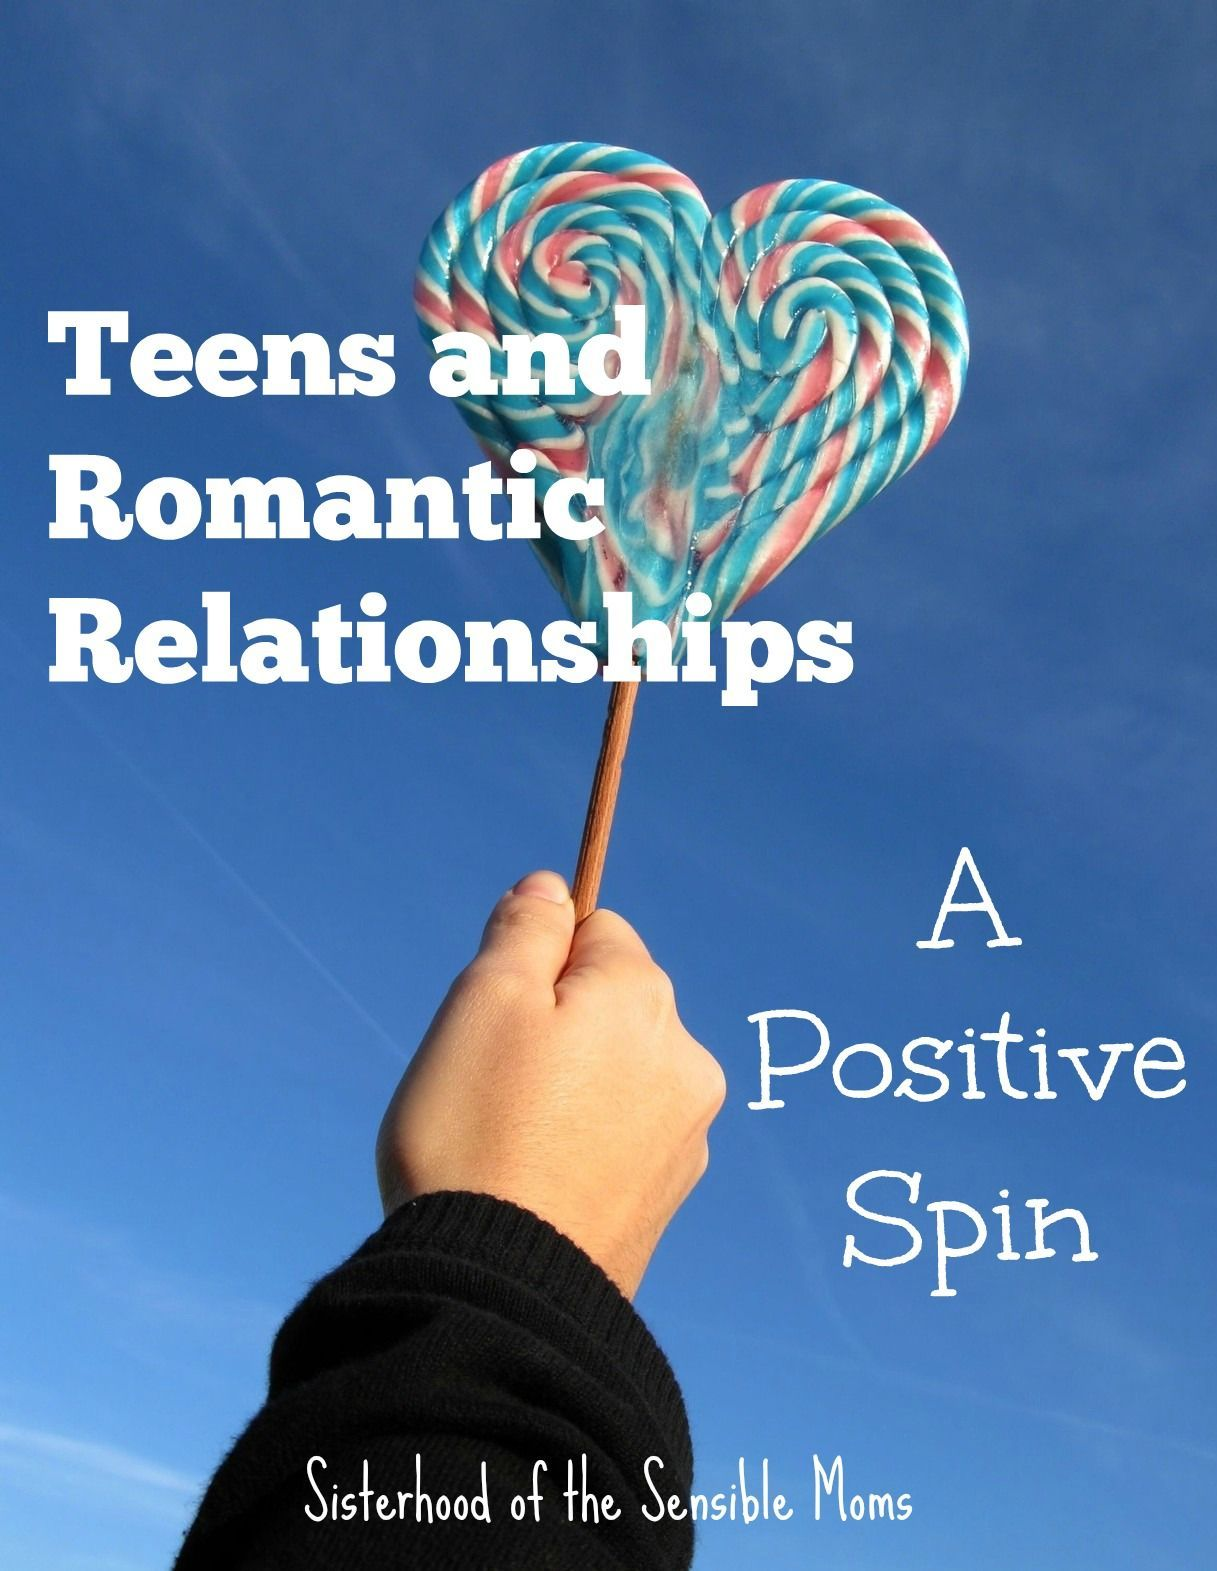 Pin On Teen Dating